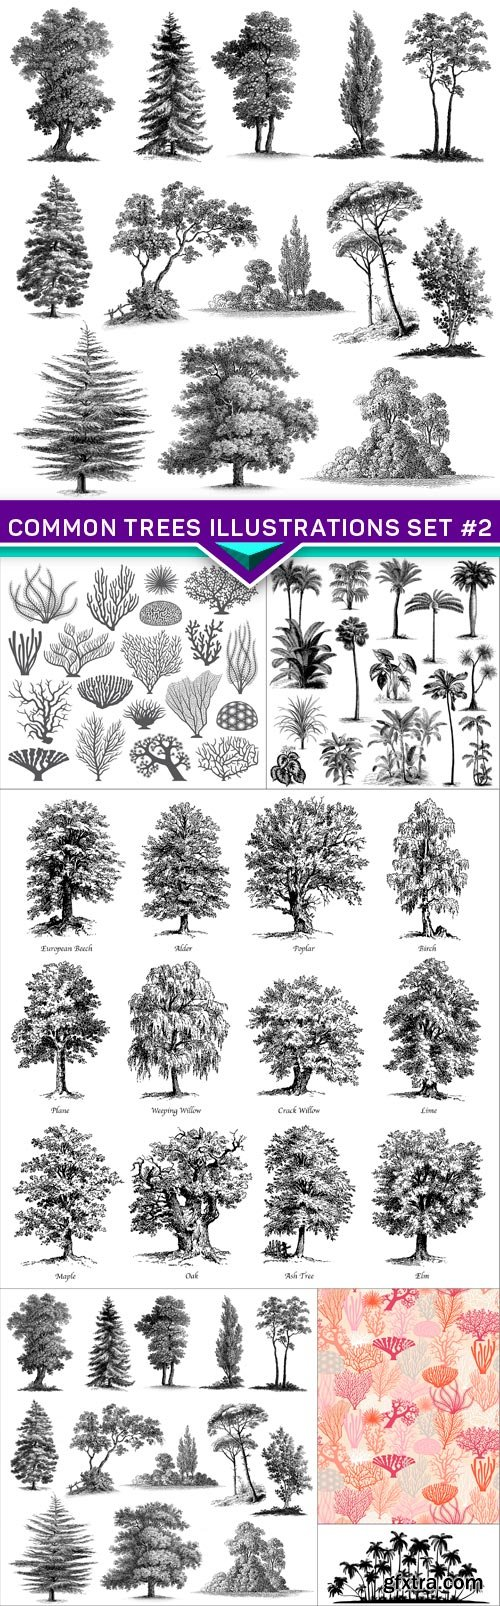 Common trees illustrations set #2 6X EPS